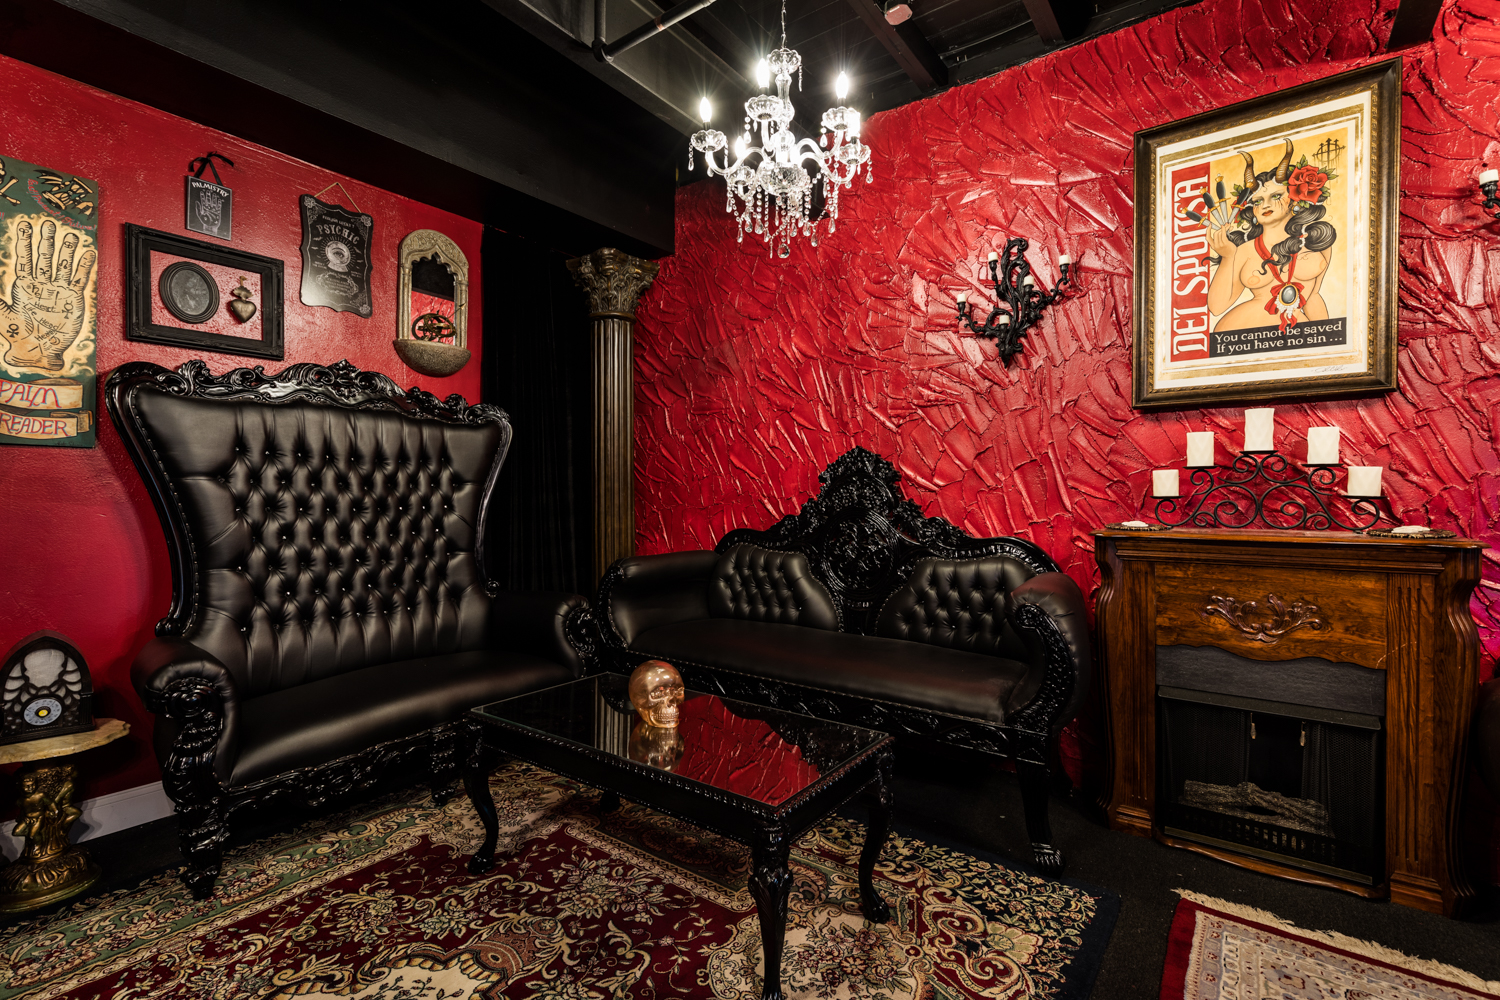 SpookEasy Lounge in Ybor